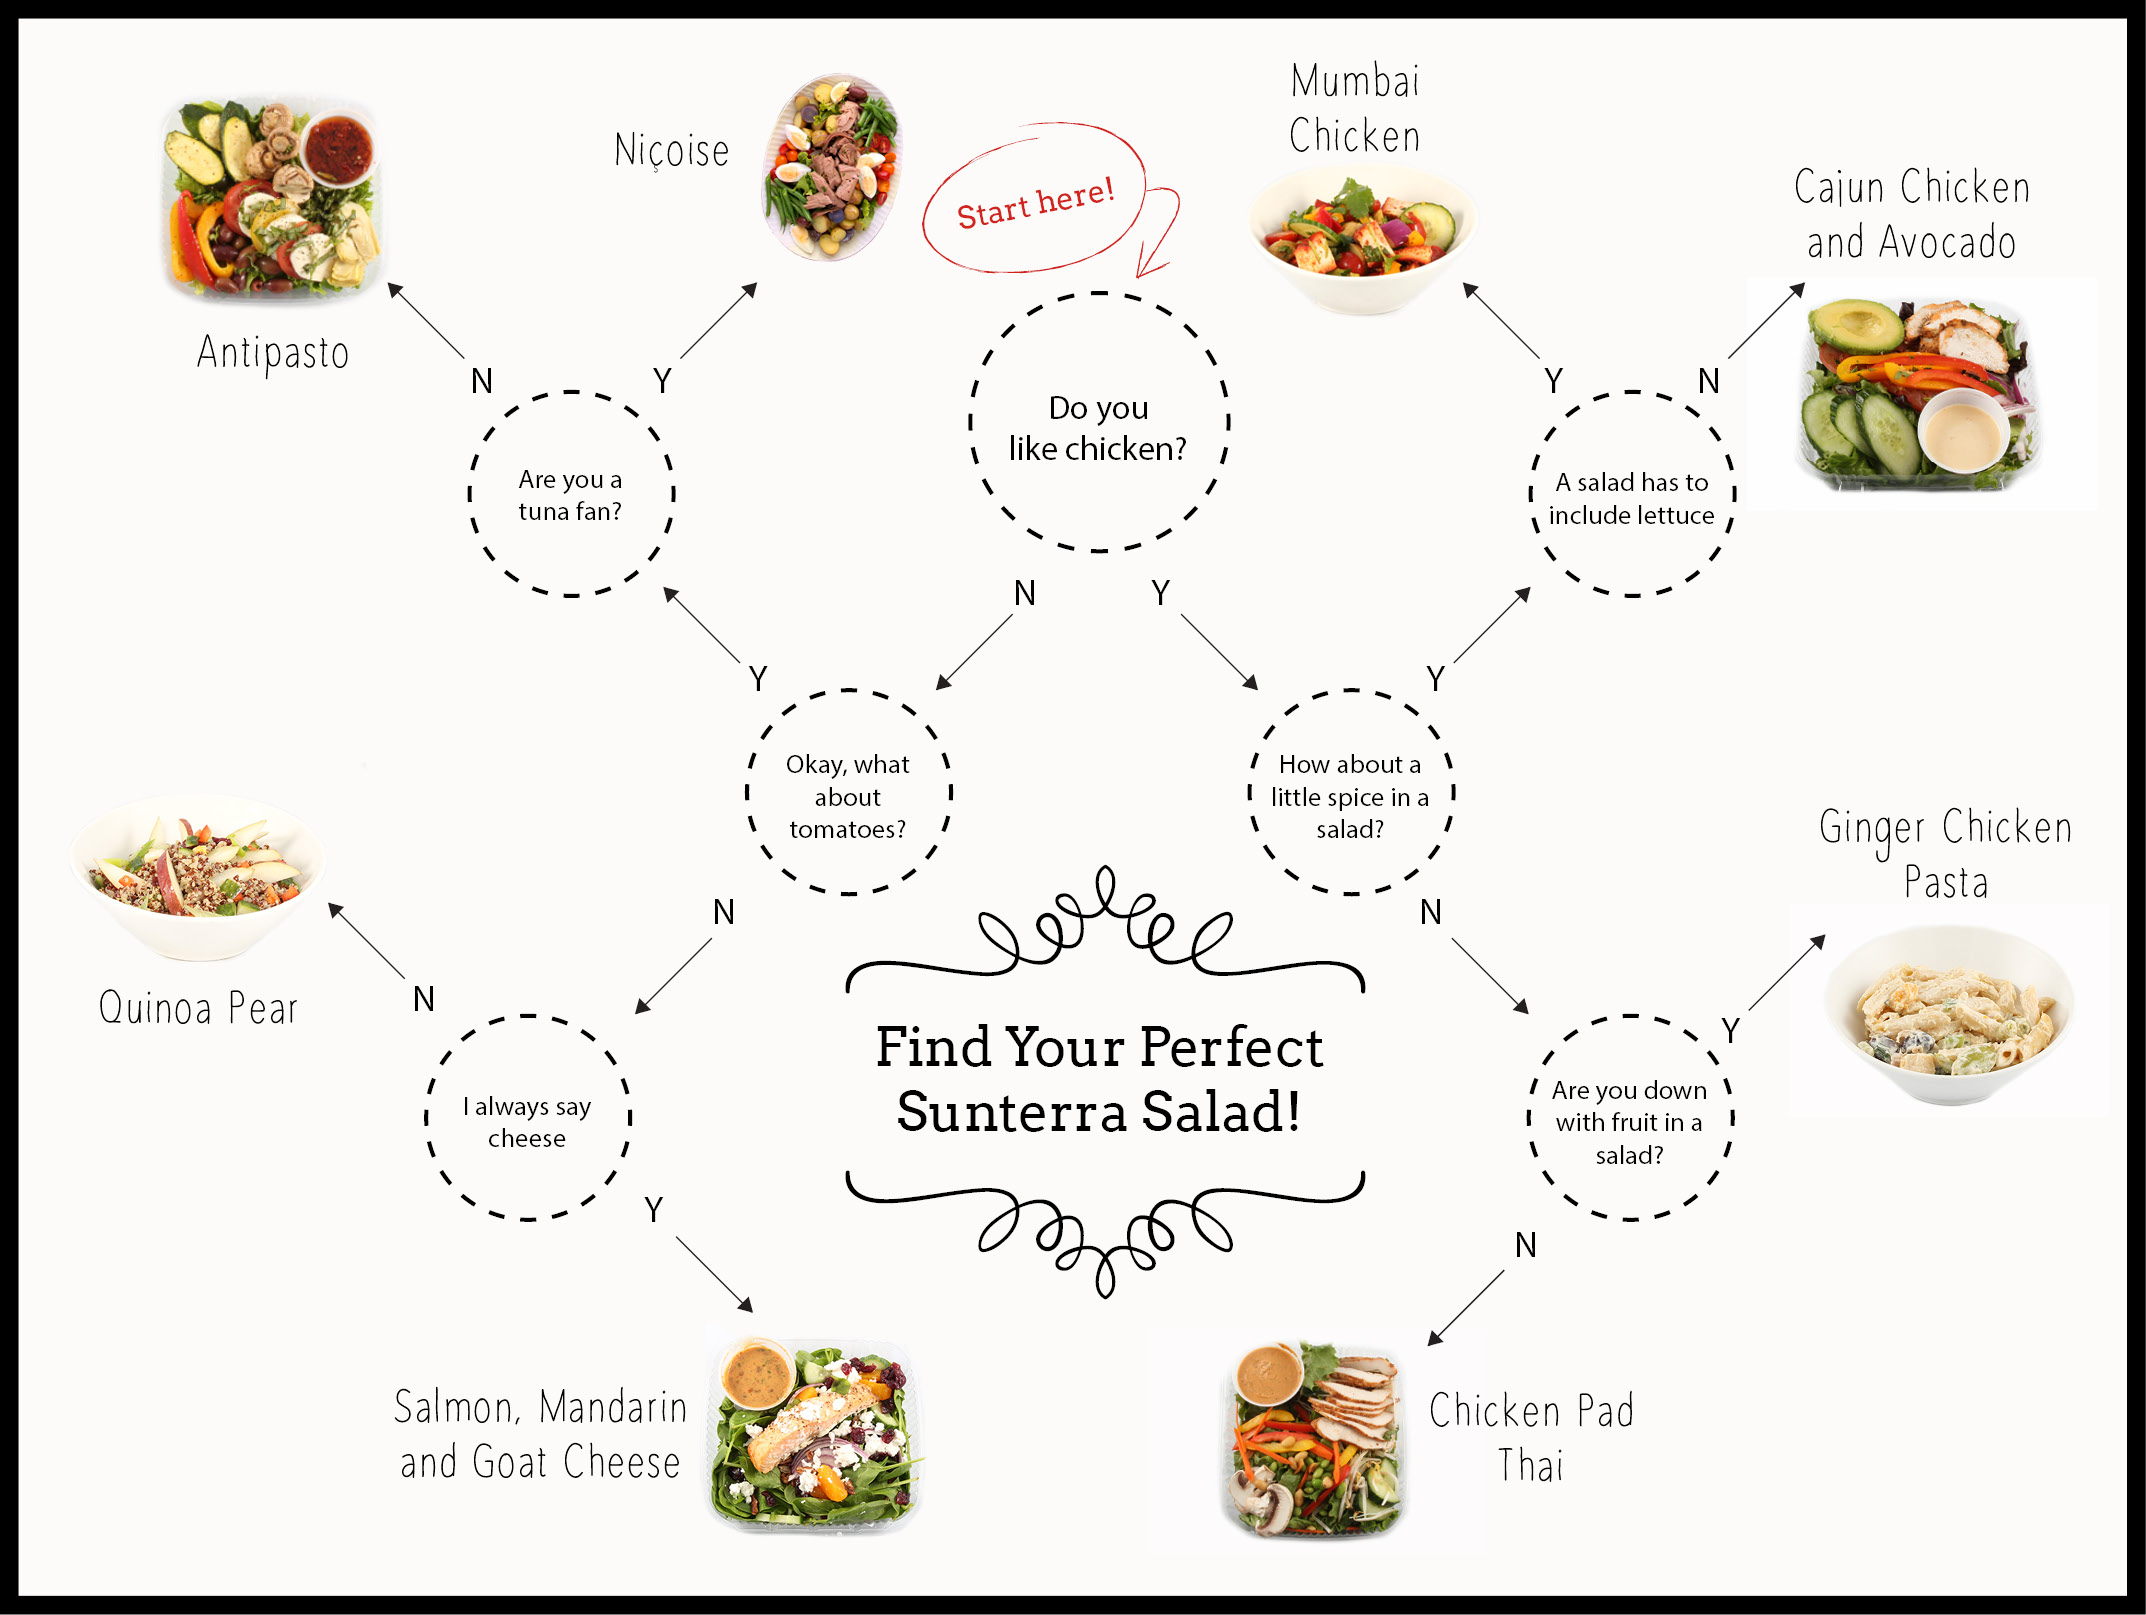 Find your perfect Sunterra Salad